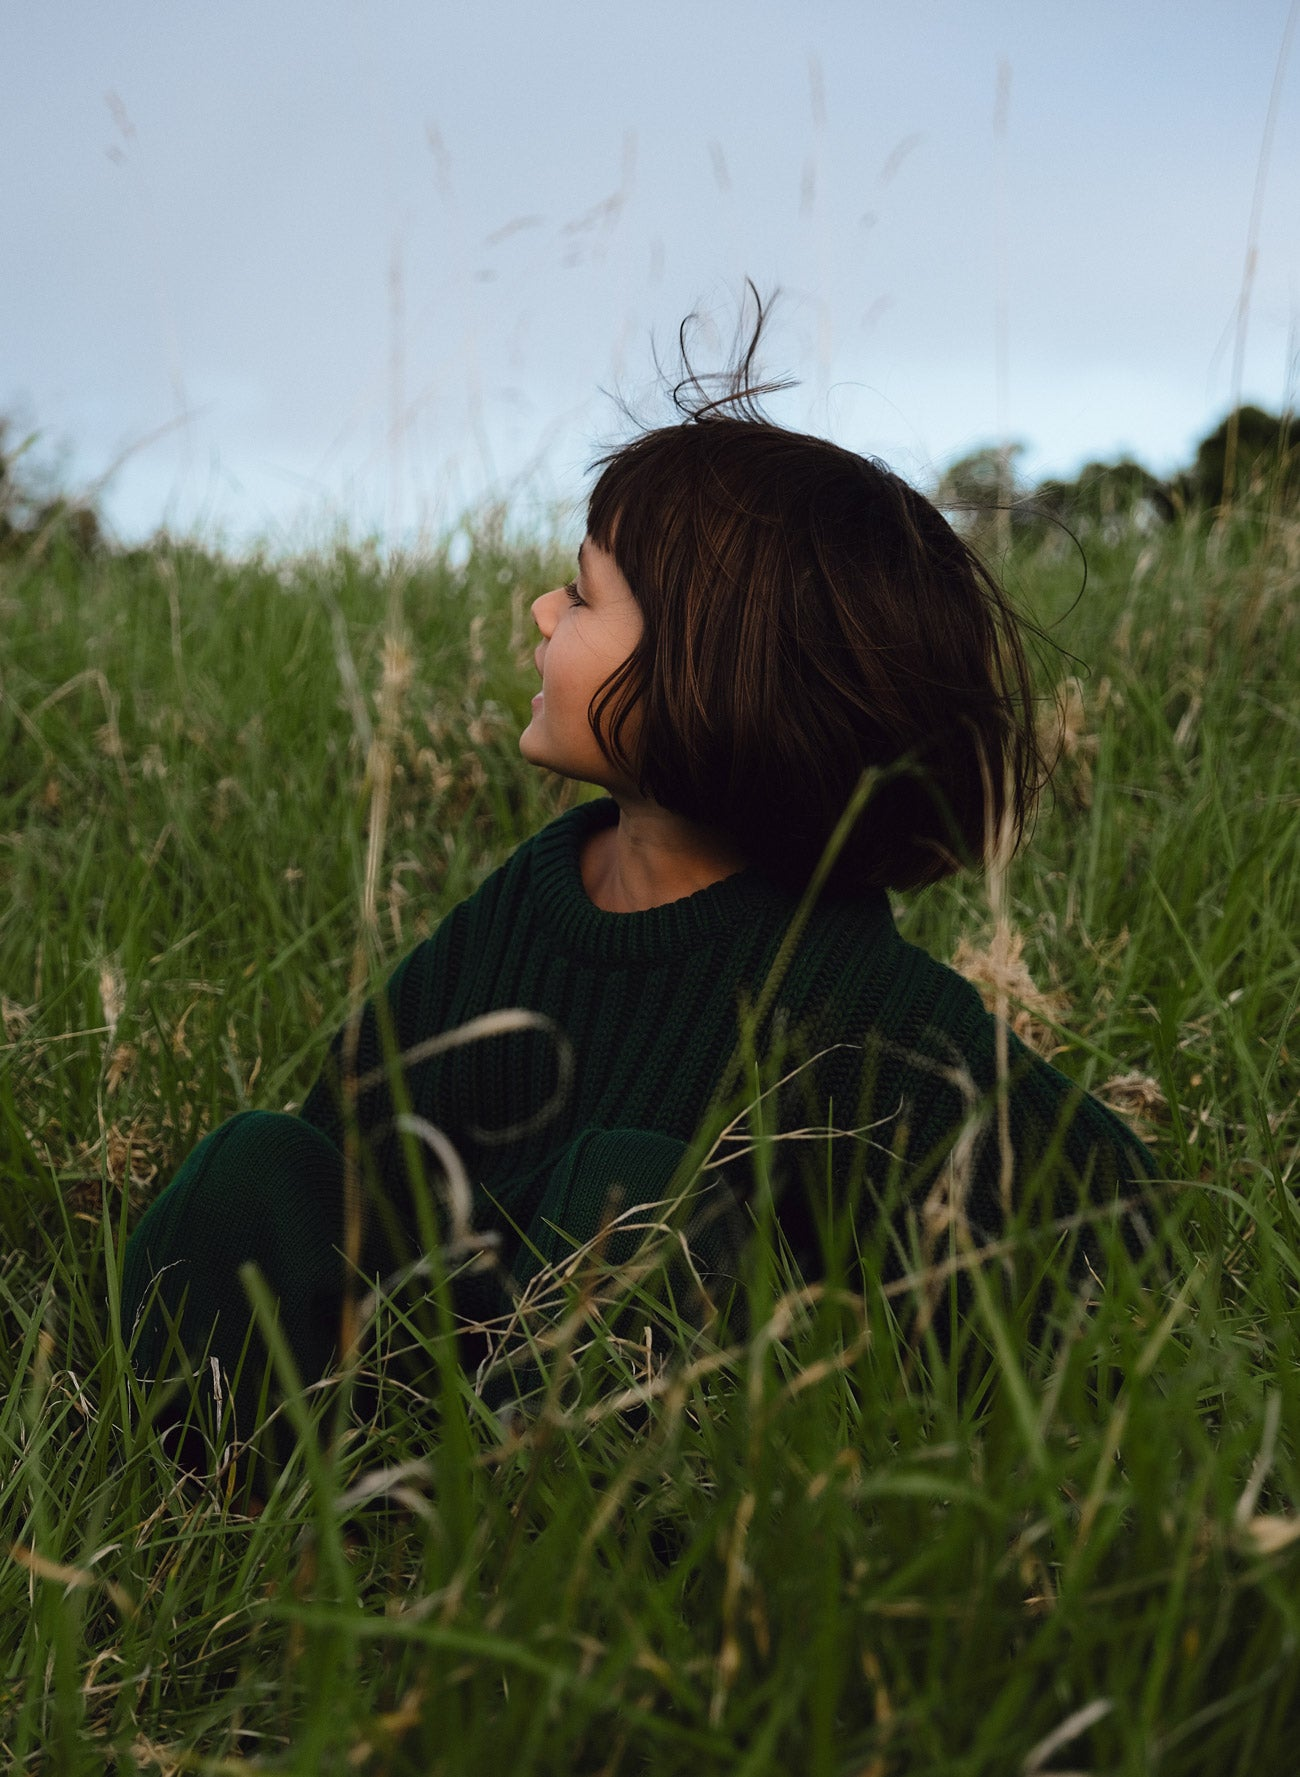 Sunna Studios, Thoughtful Knitwear for Woman and Children, New Zealand